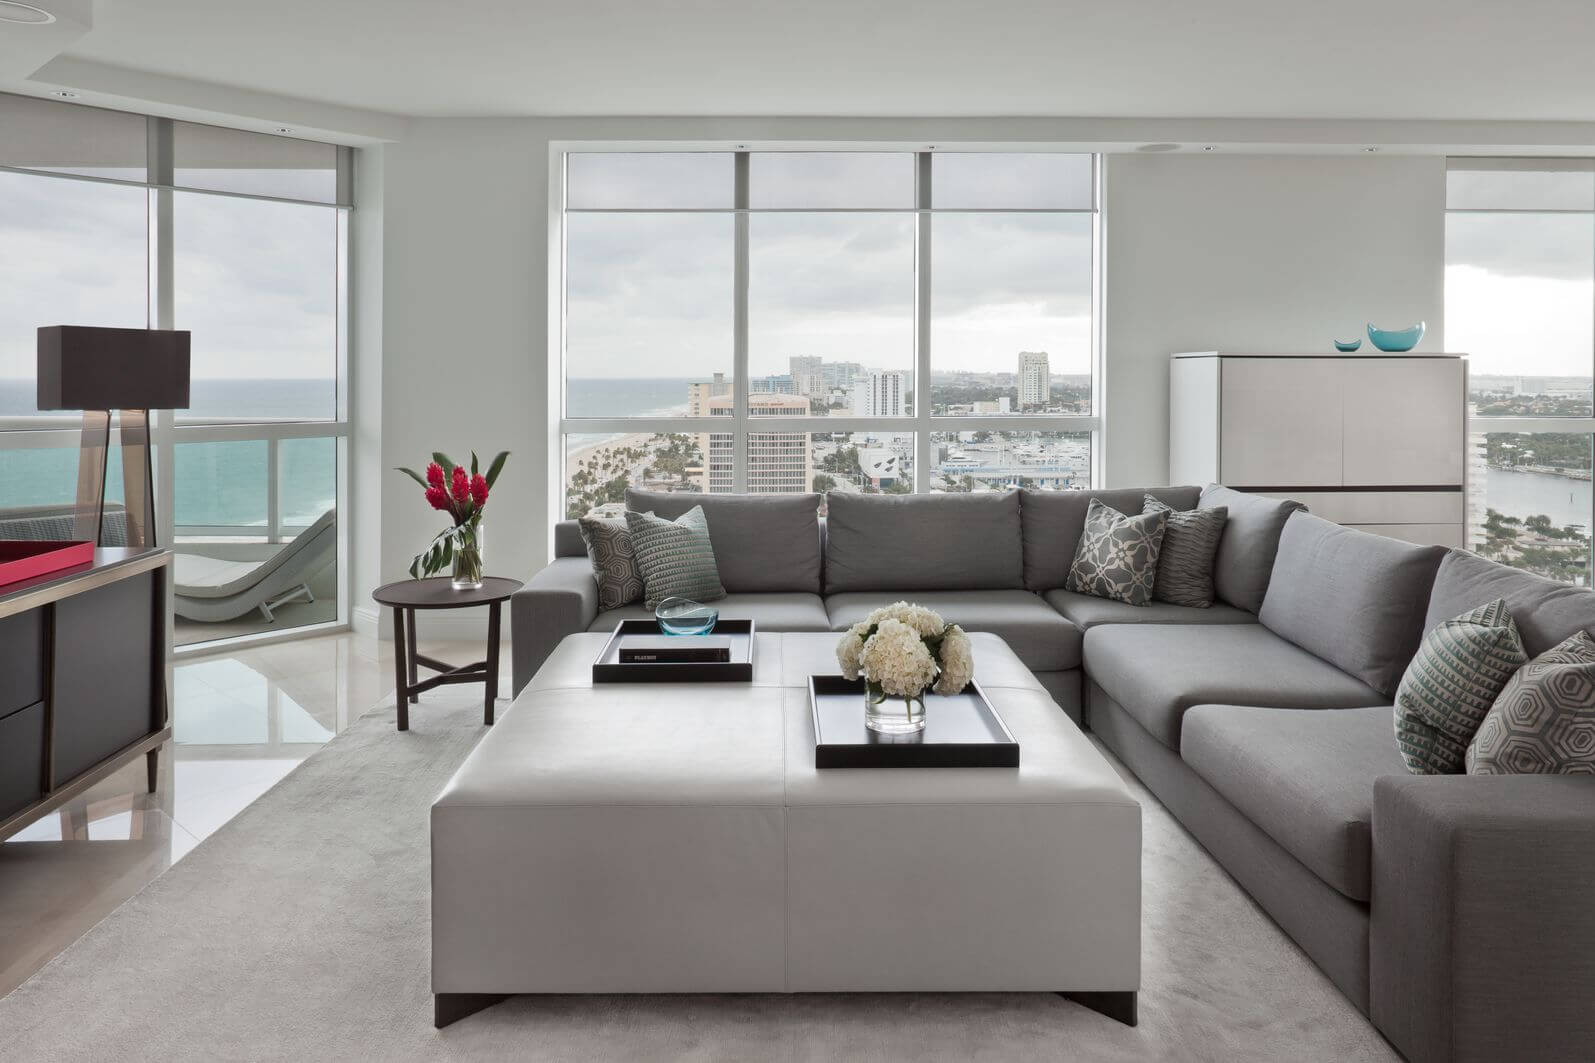 Elegant This Modern Living Room, Naturally Lit Via Floor To Ceiling Windows,  Features Immense White